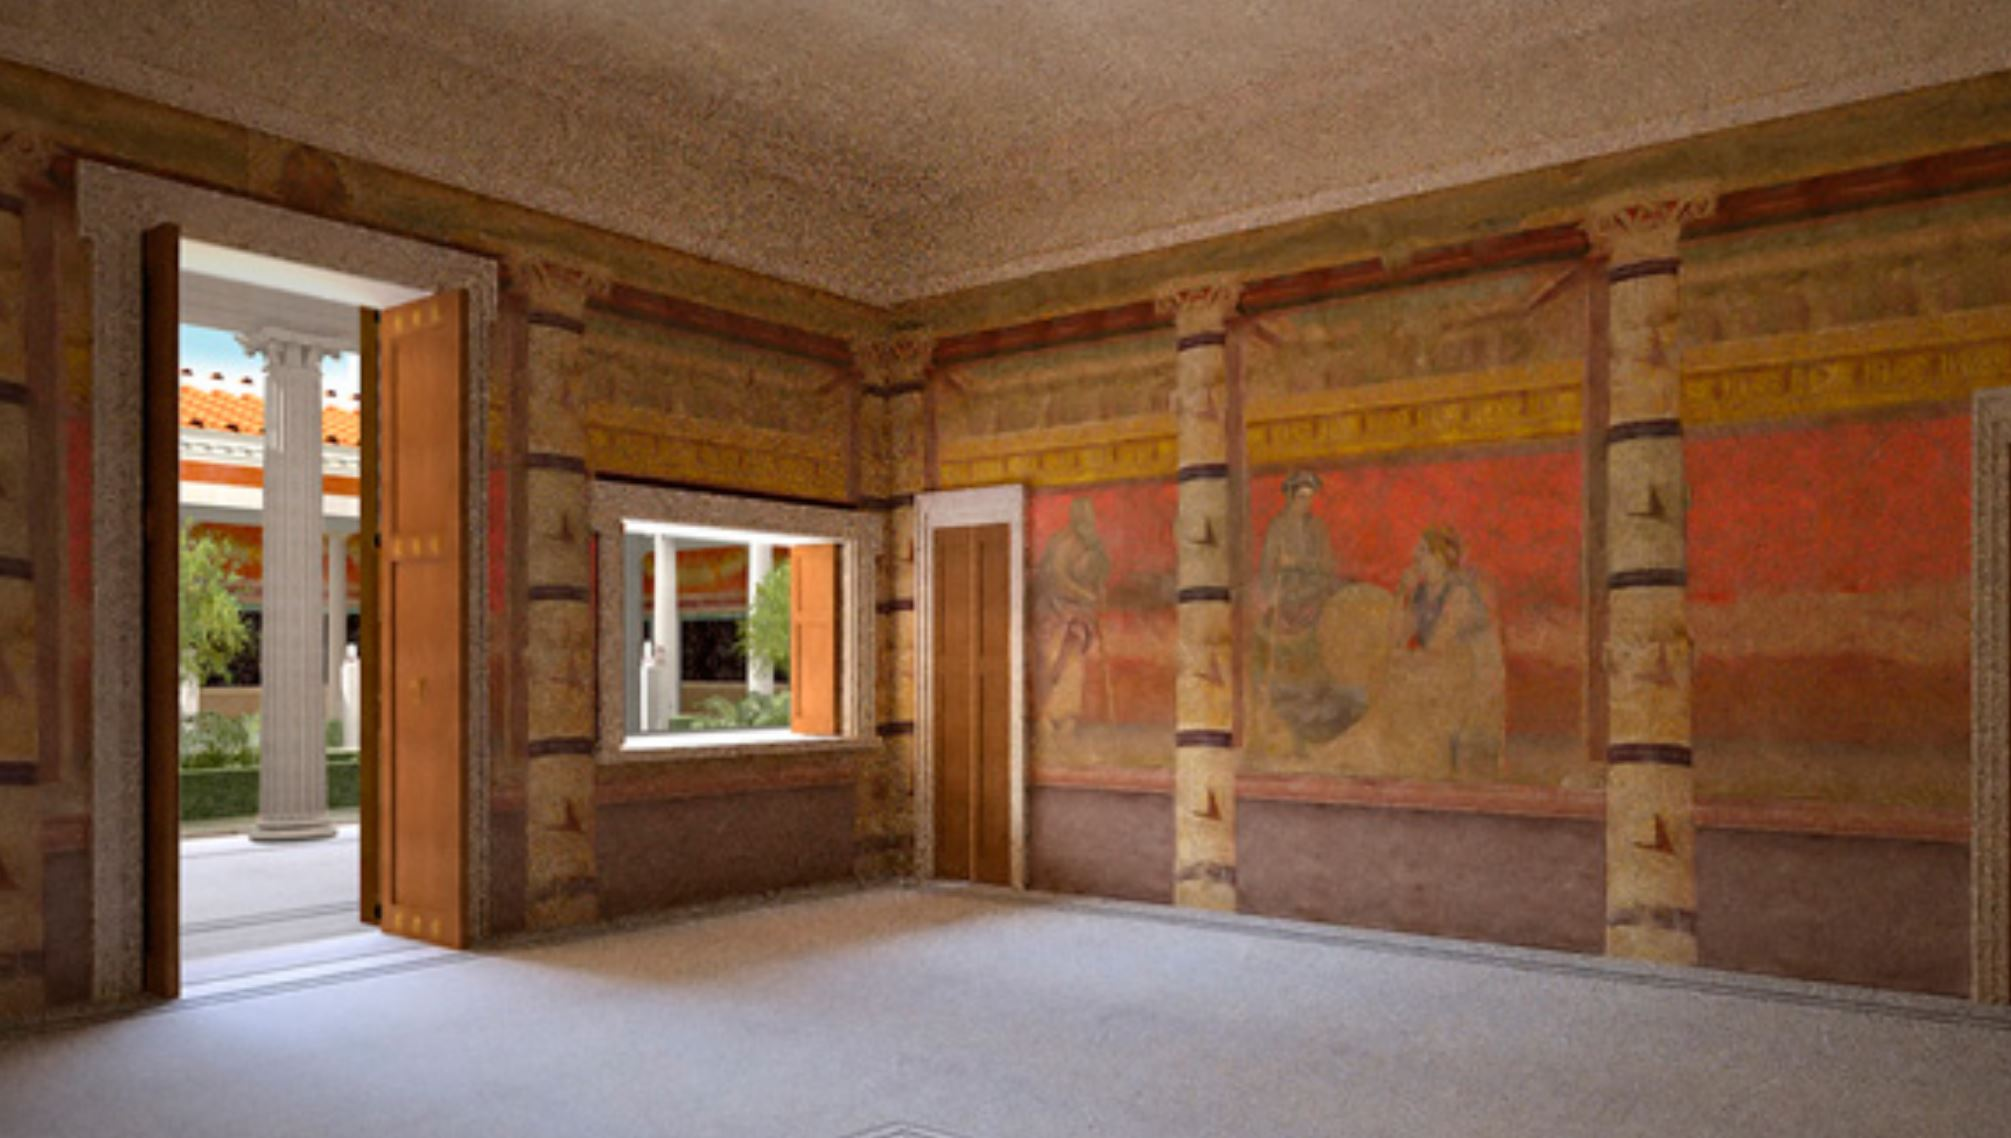 Room H of the Villa of P. Fannius Synistor at Boscoreale, ca. 40–30 B.C mur Ouest